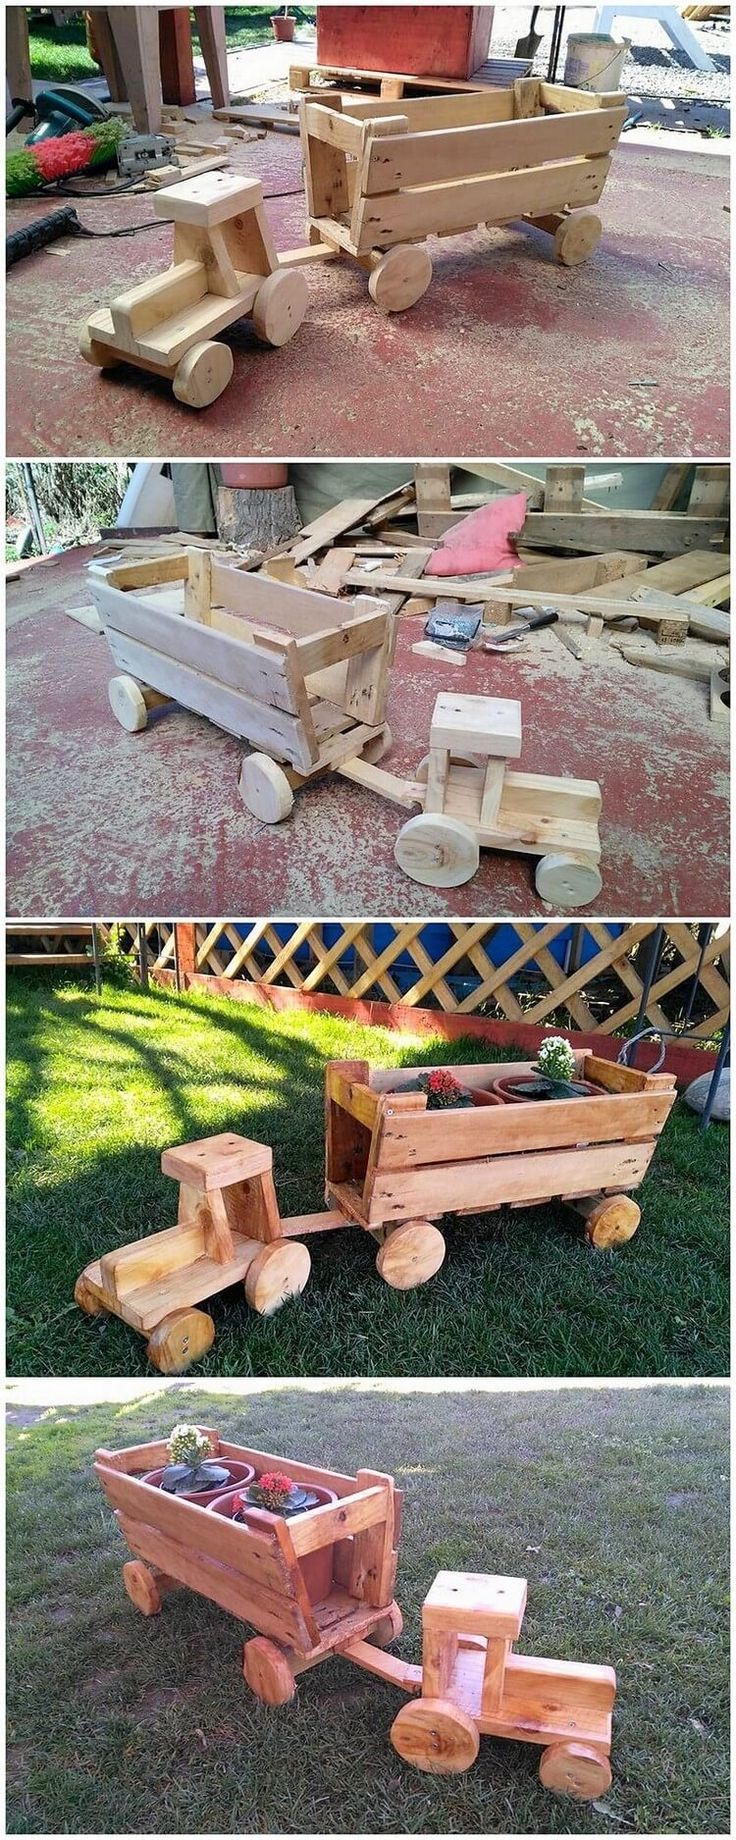 Mind Blowing Creations with Recycled Shipping Pallets